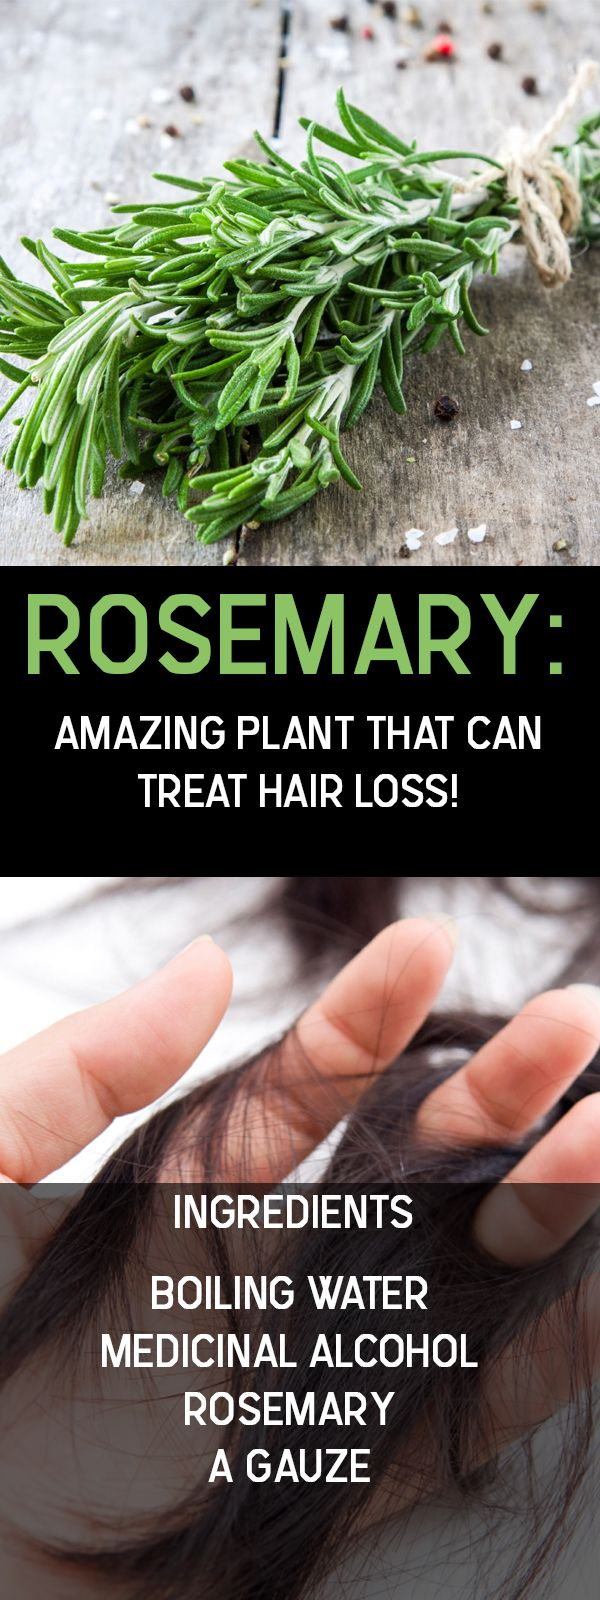 Rosemary is an herb you might not even know you have in your garden. It has many health benefits and has been used by the ancient Greeks and Romans for its medicinal properties. Rosemary is excellent for regulating your blood pressure and for treating digestive problems, but it has also been used against heart diseaseContinue Reading